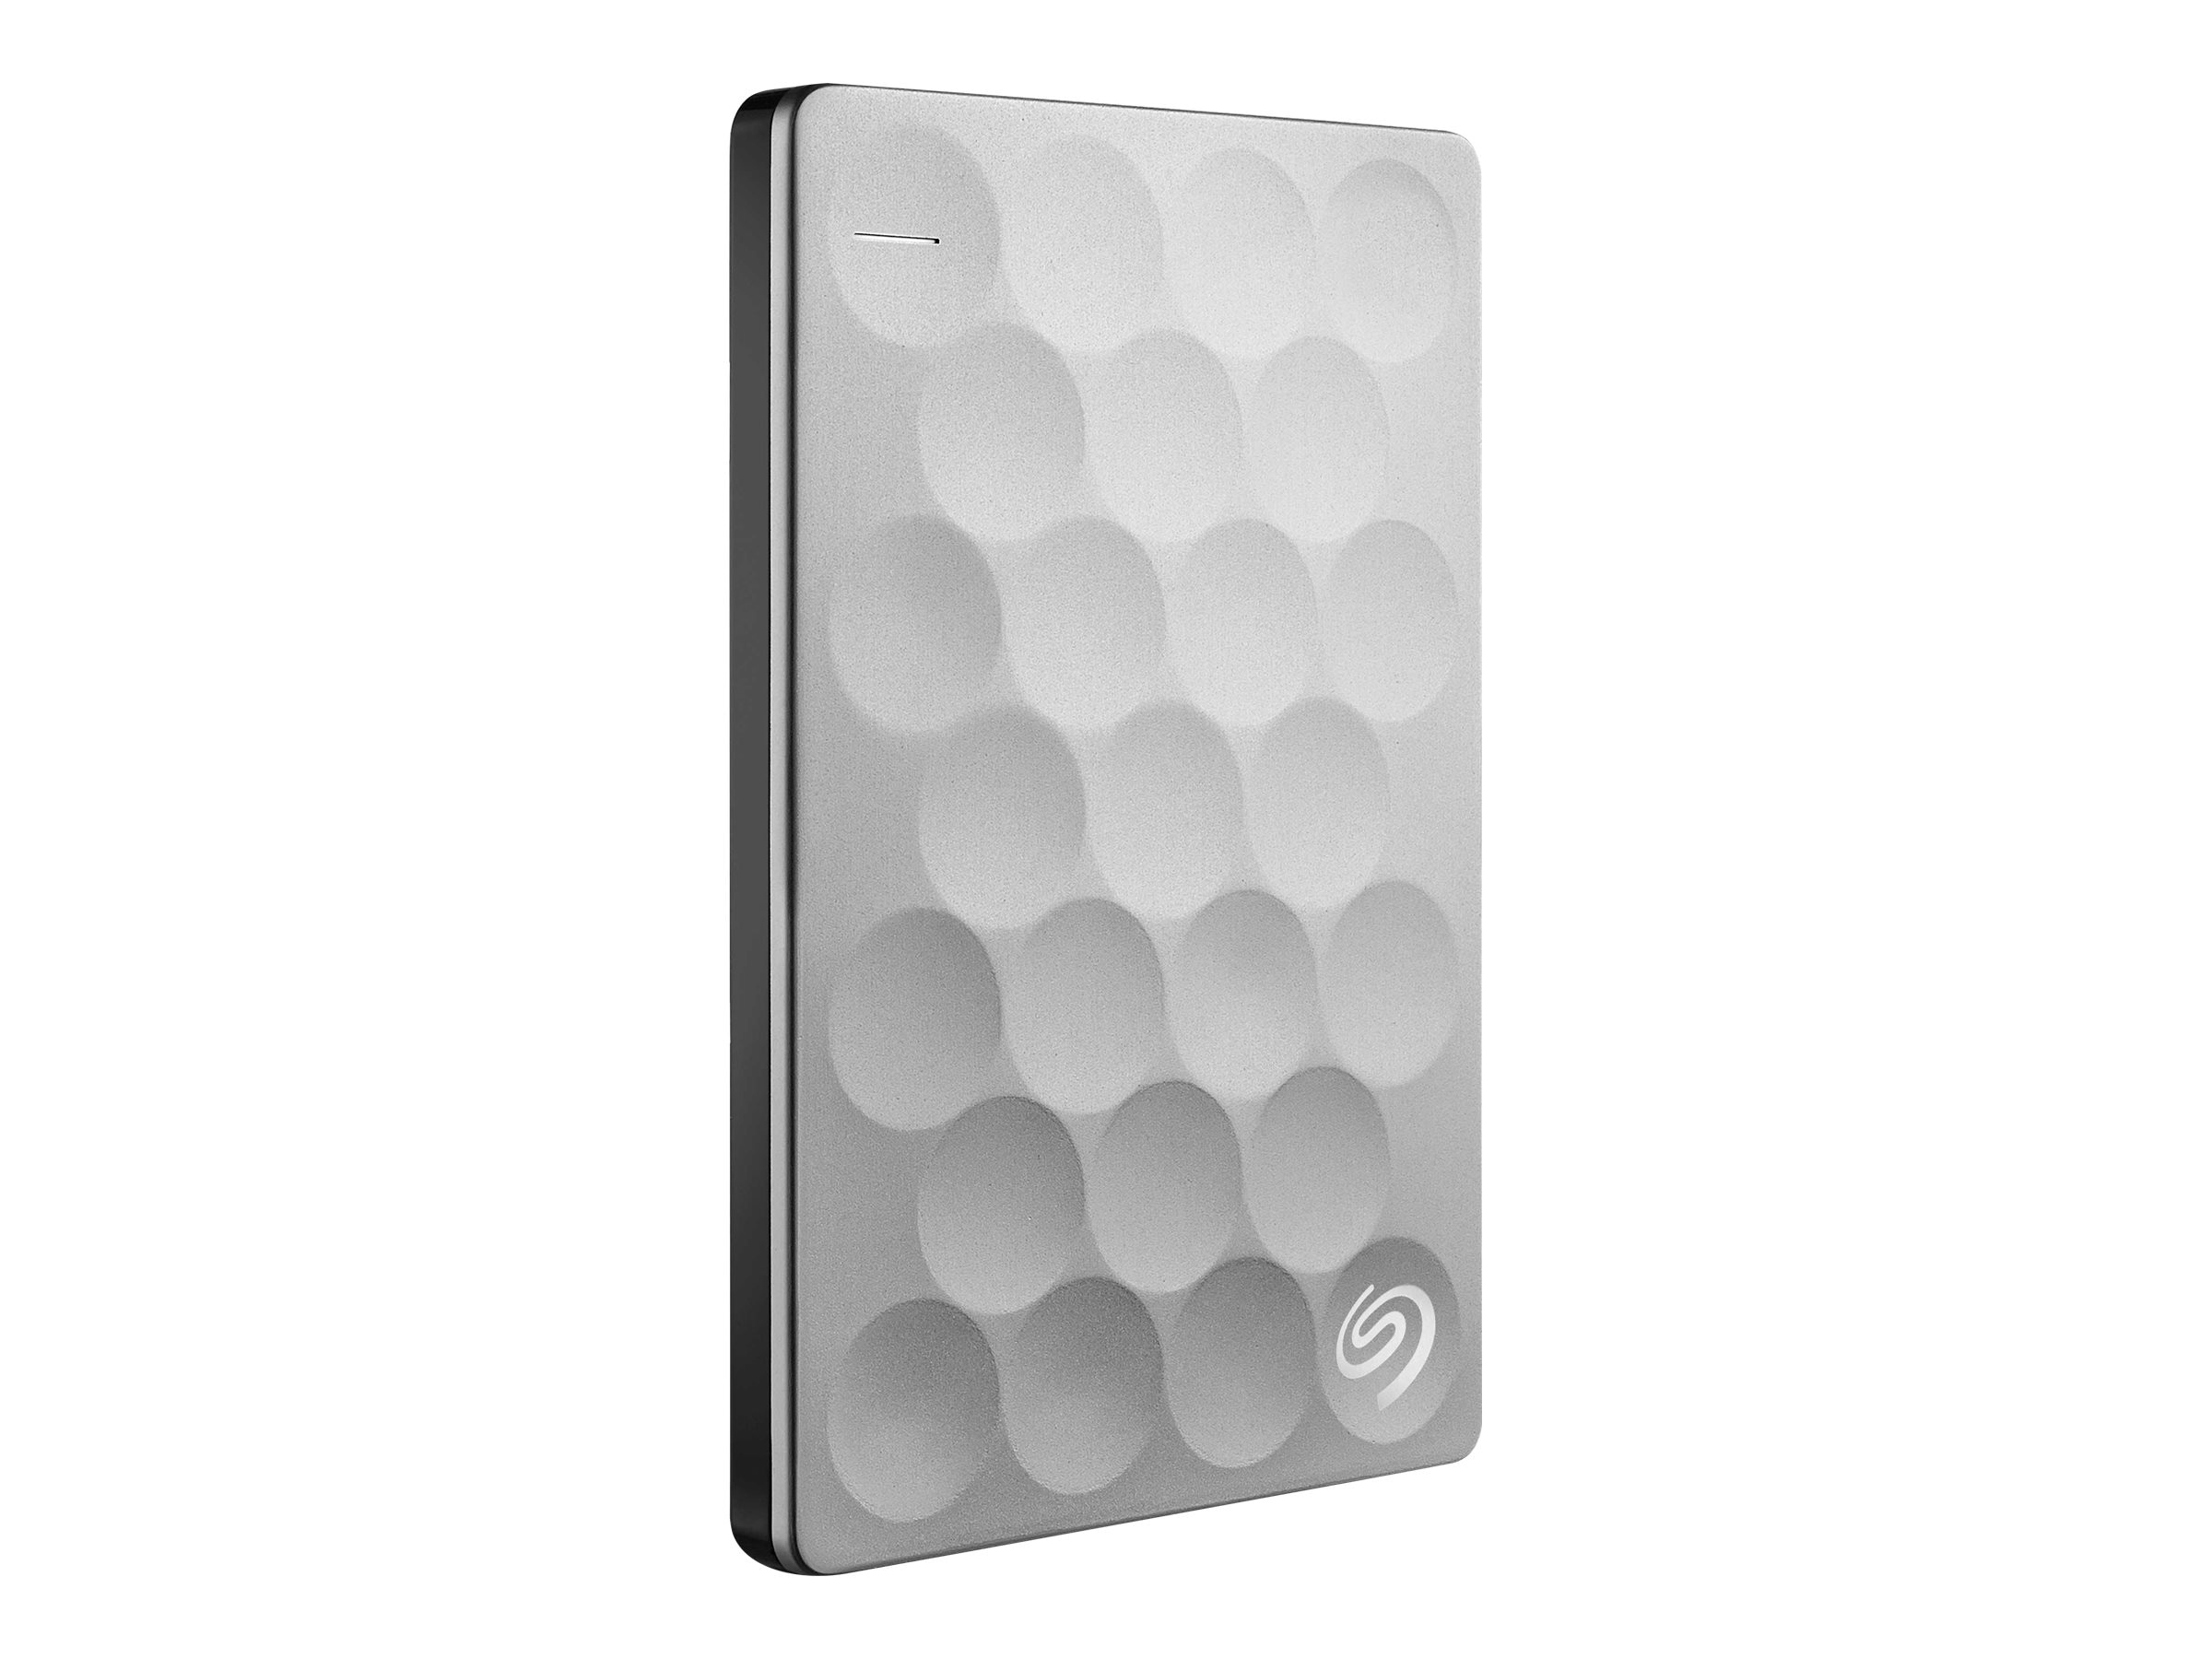 Seagate Technology STEH1000100 Image 1